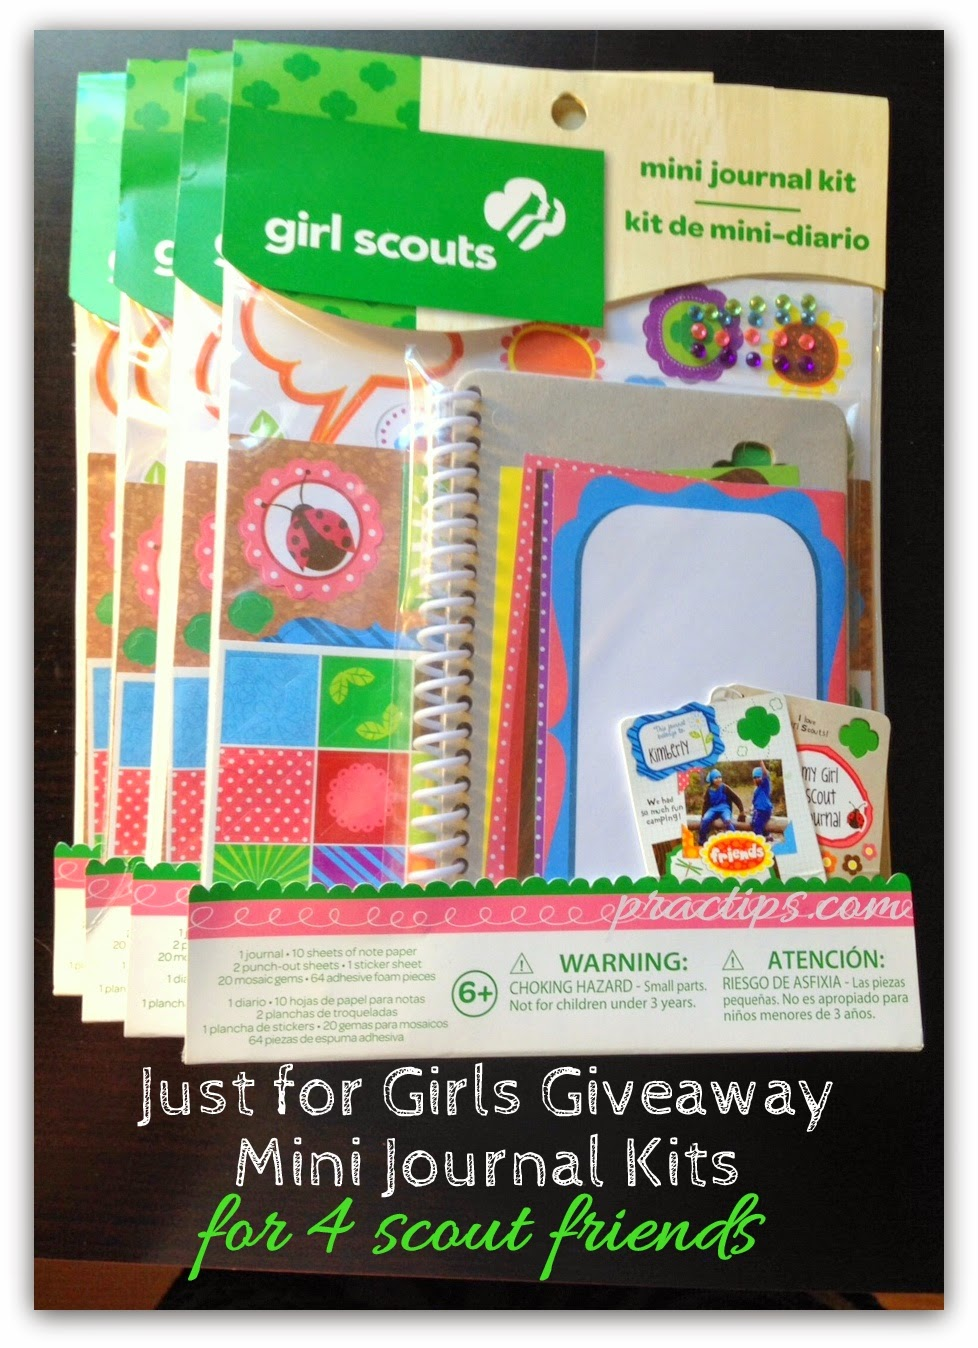 practips just for girls giveaway scout mini journal kits